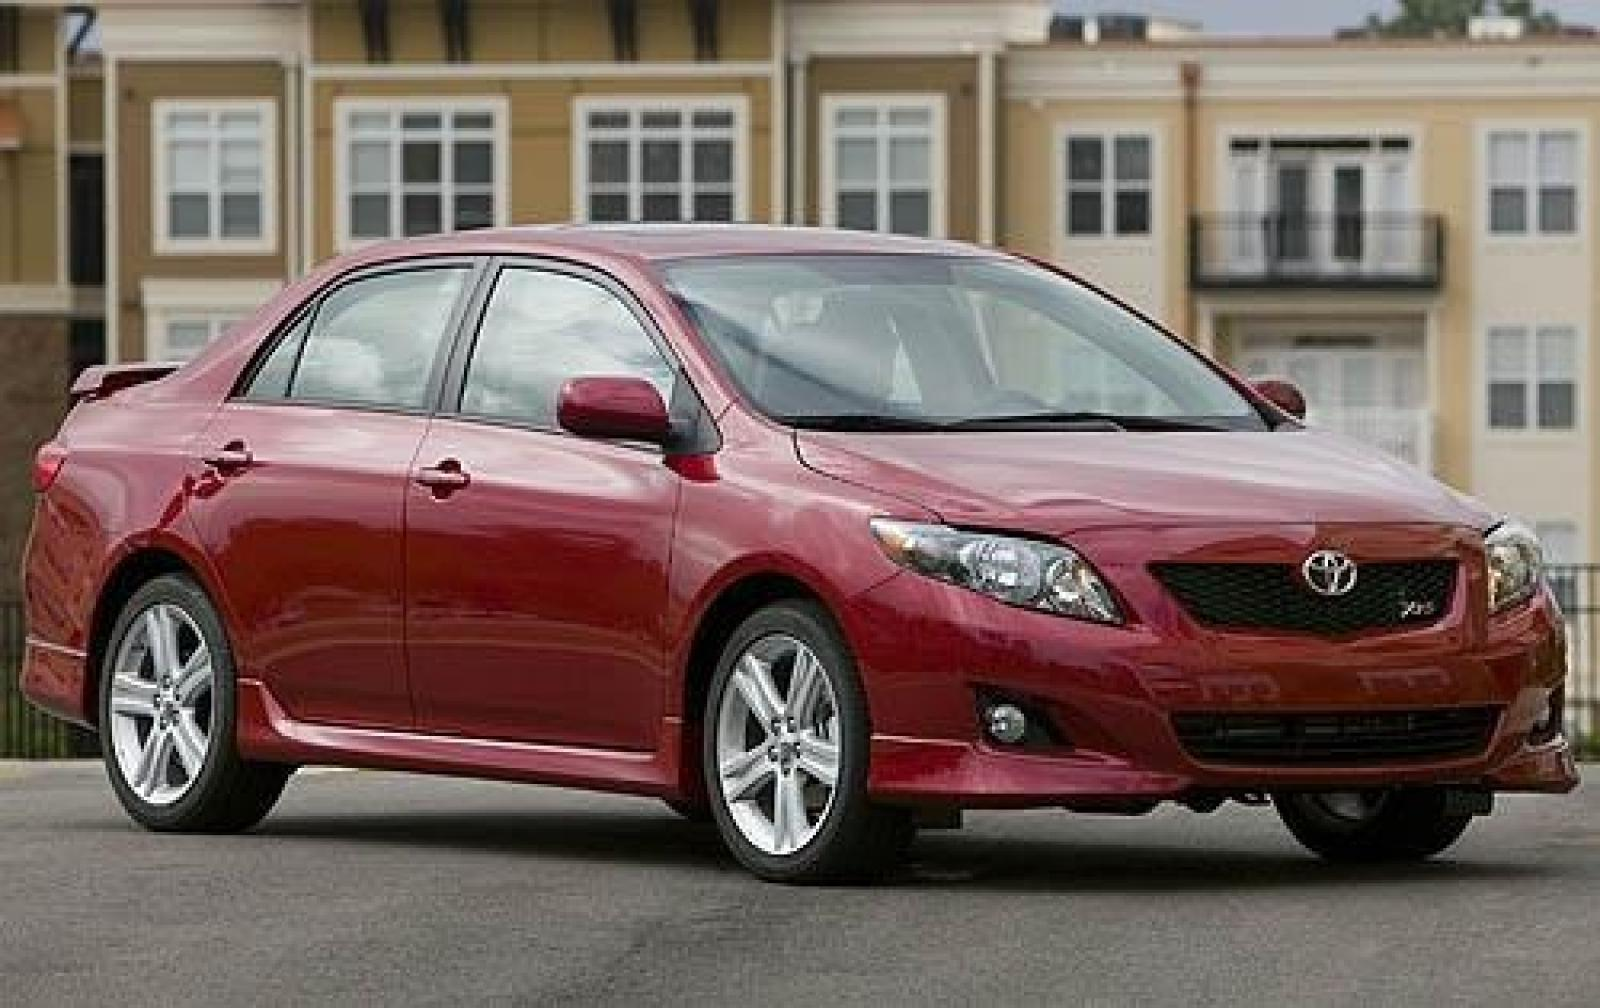 2010 toyota corolla information and photos zombiedrive. Black Bedroom Furniture Sets. Home Design Ideas